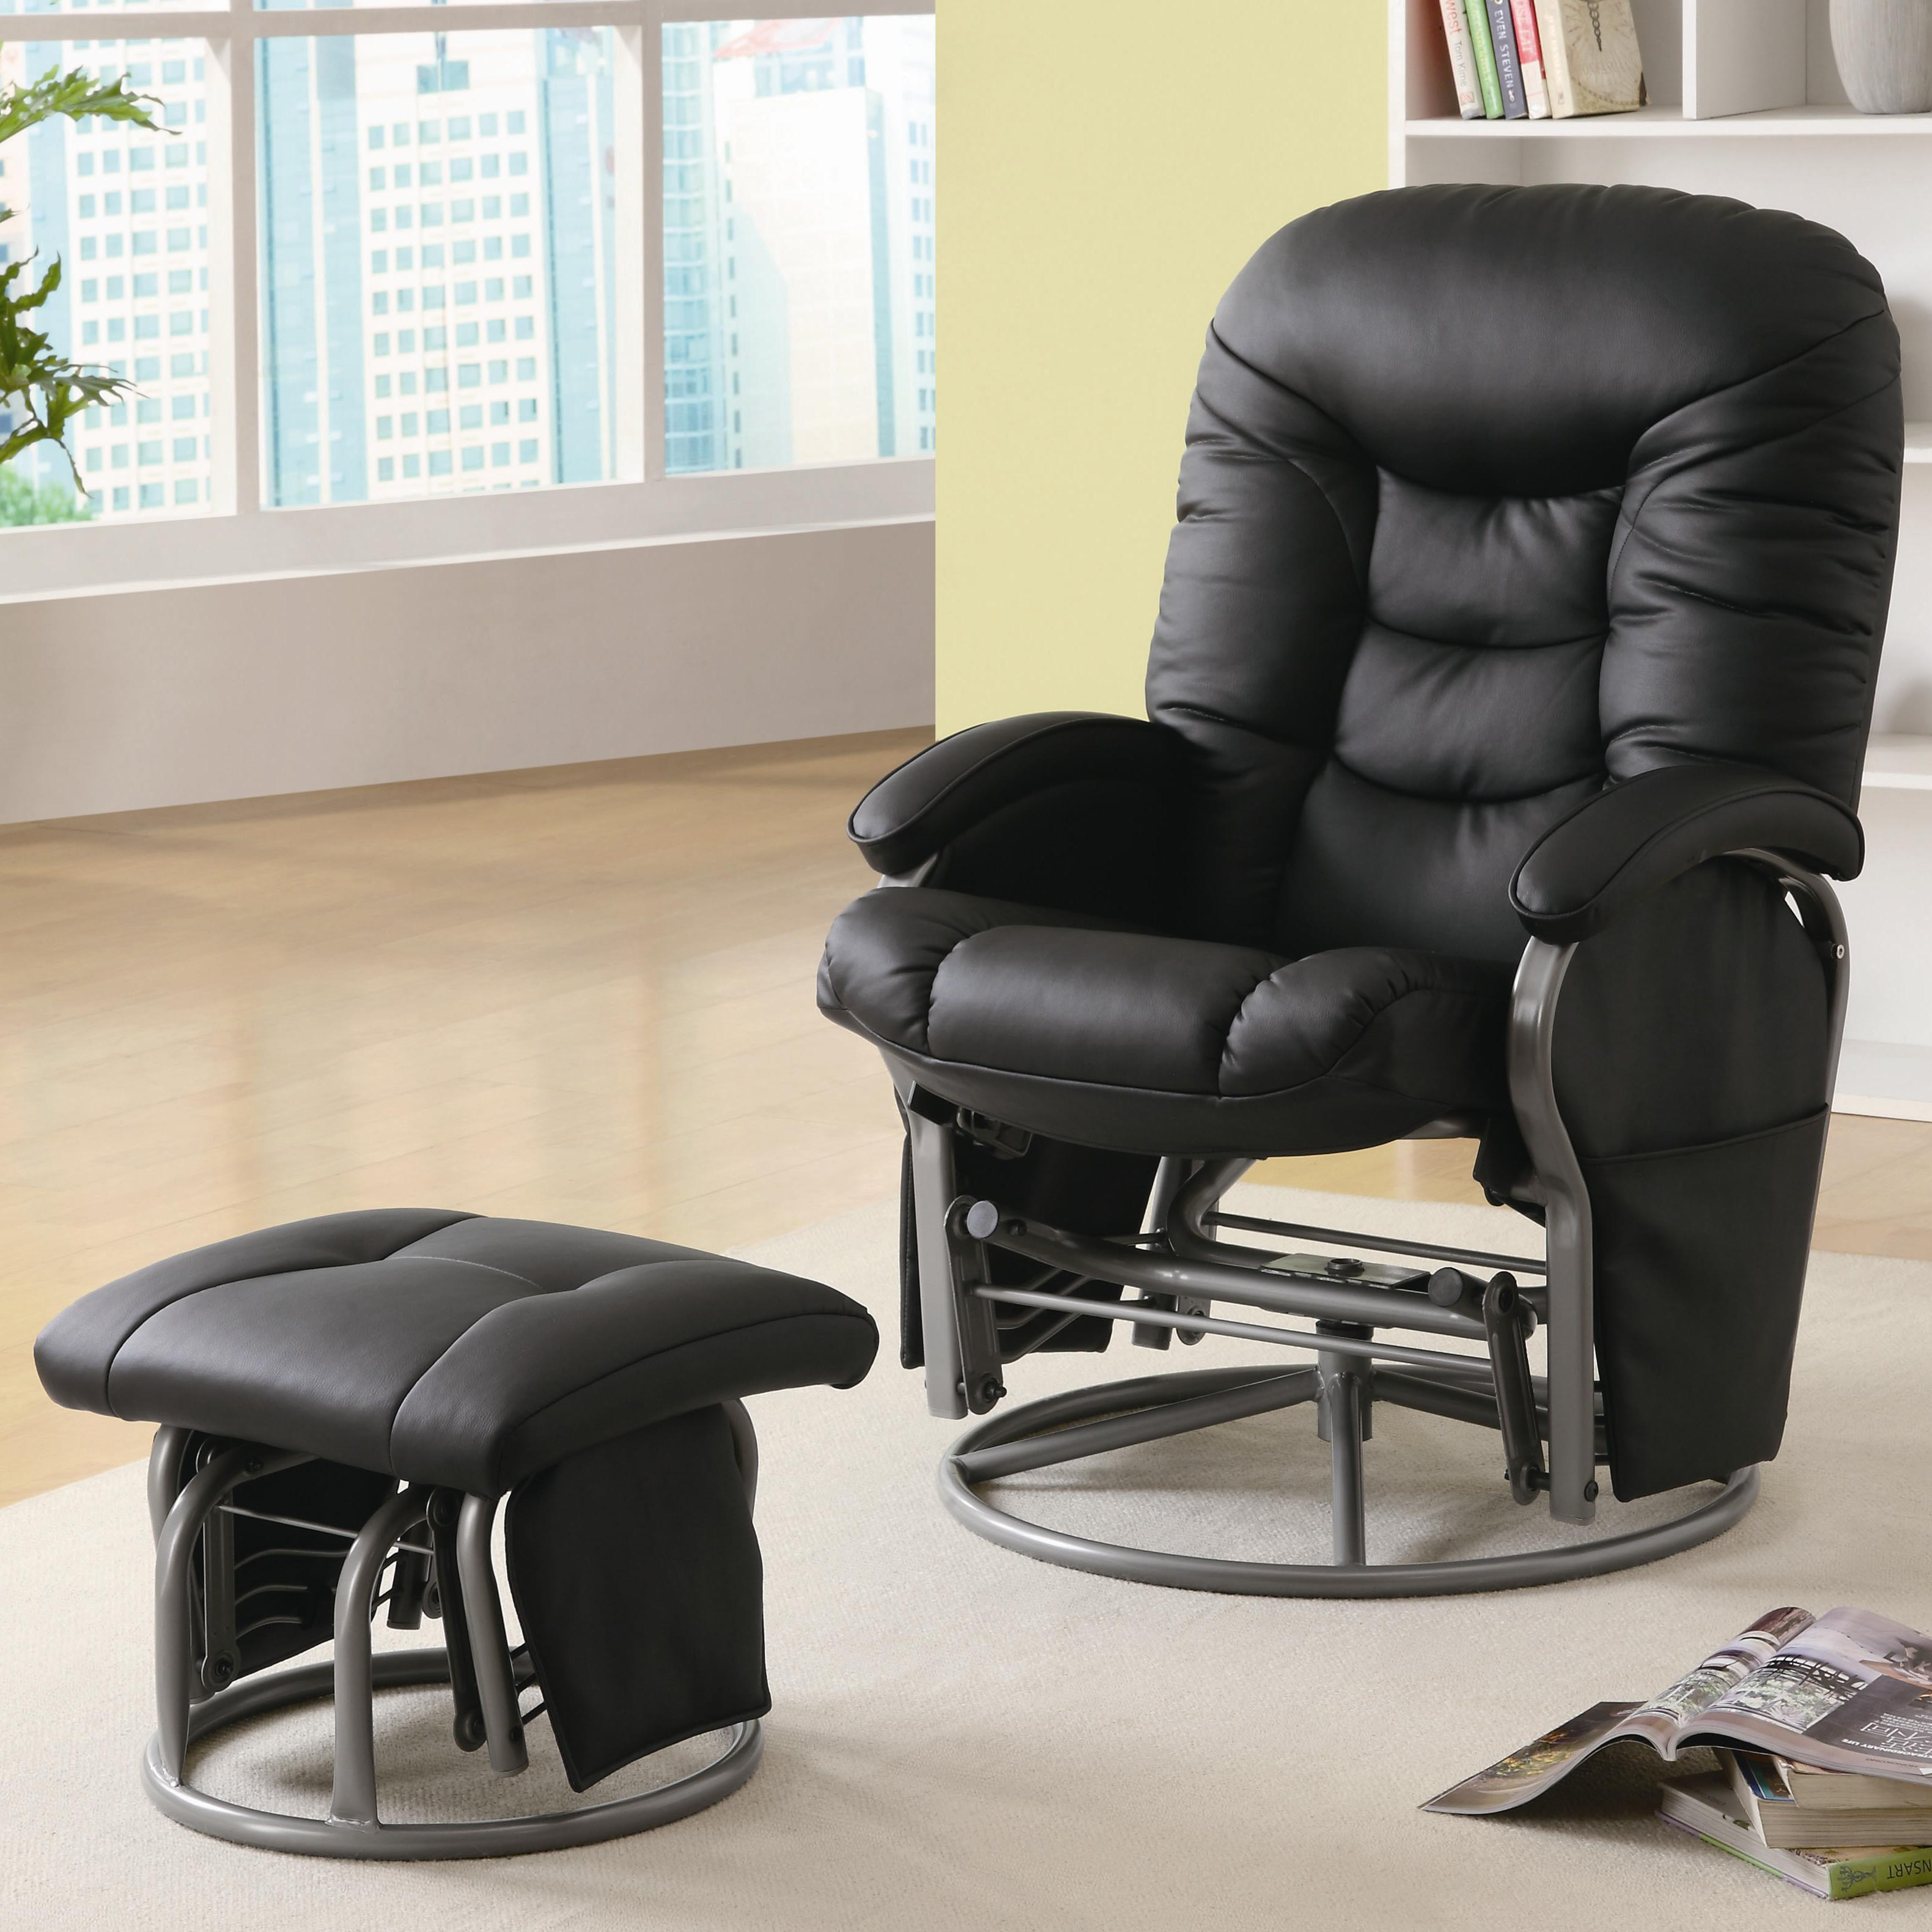 glider recliner chair toddler swing coaster recliners with ottomans casual leatherette ottoman